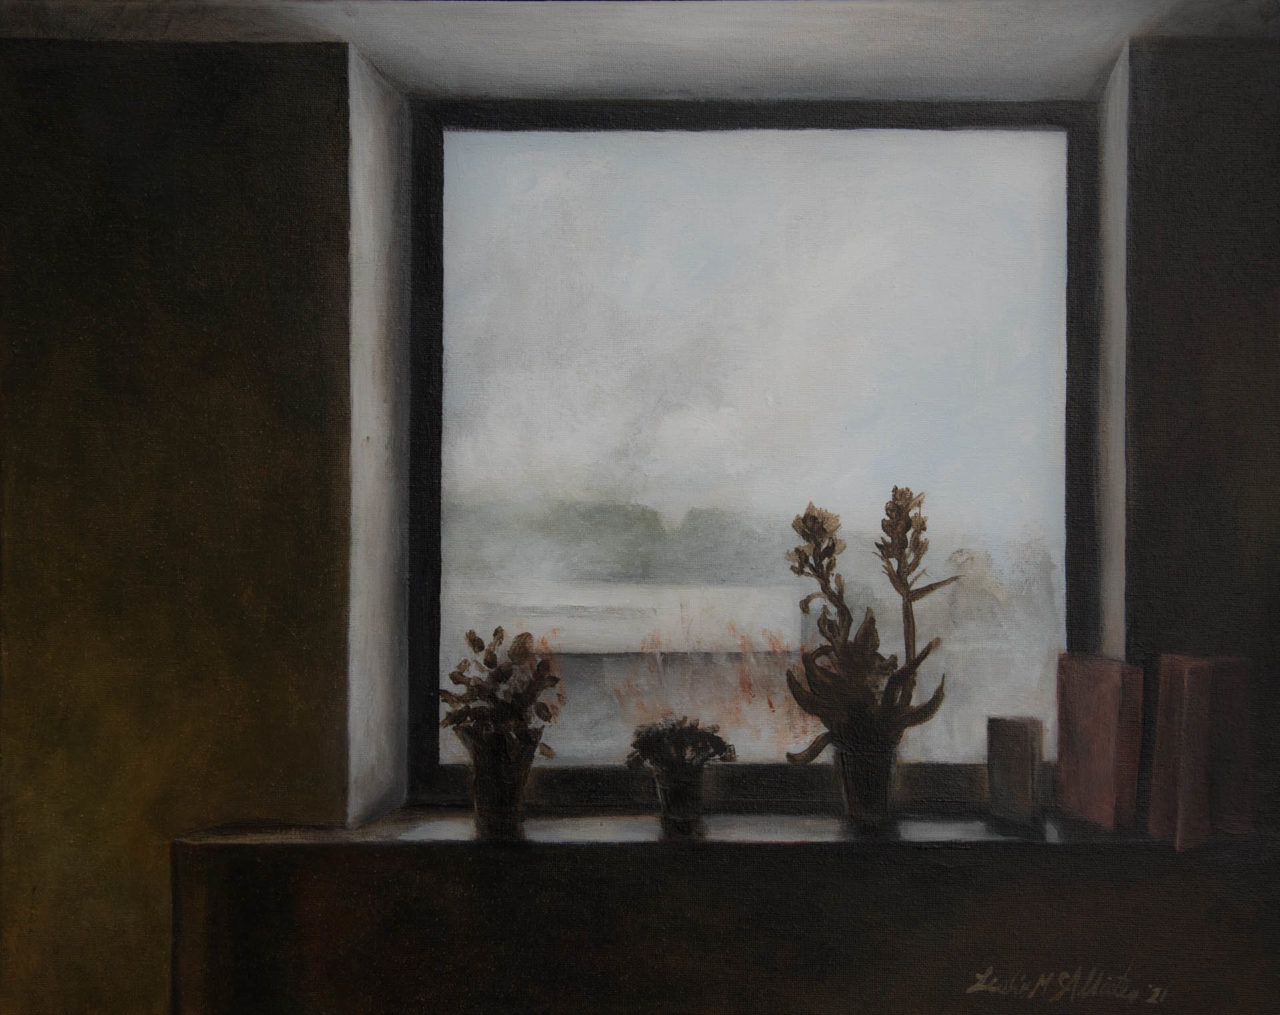 View from a loved ones hospital room - Leslie McAllister